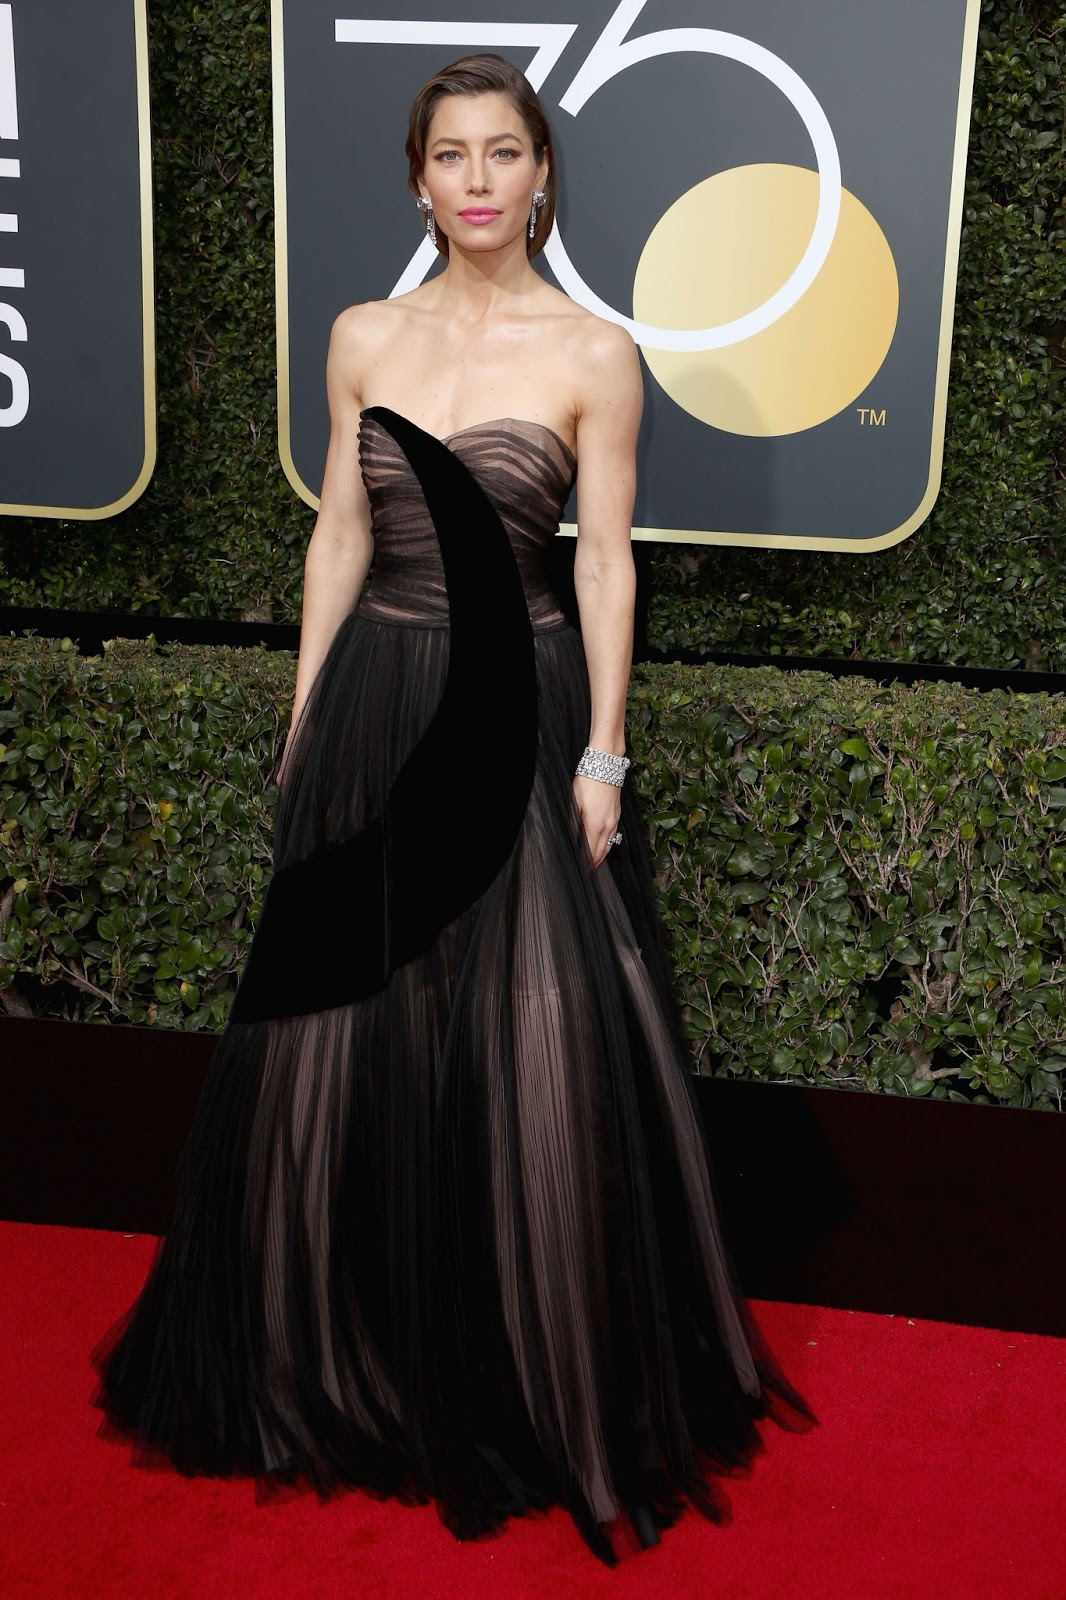 Jessica Biel Dress at Golden Globe Awards 2018